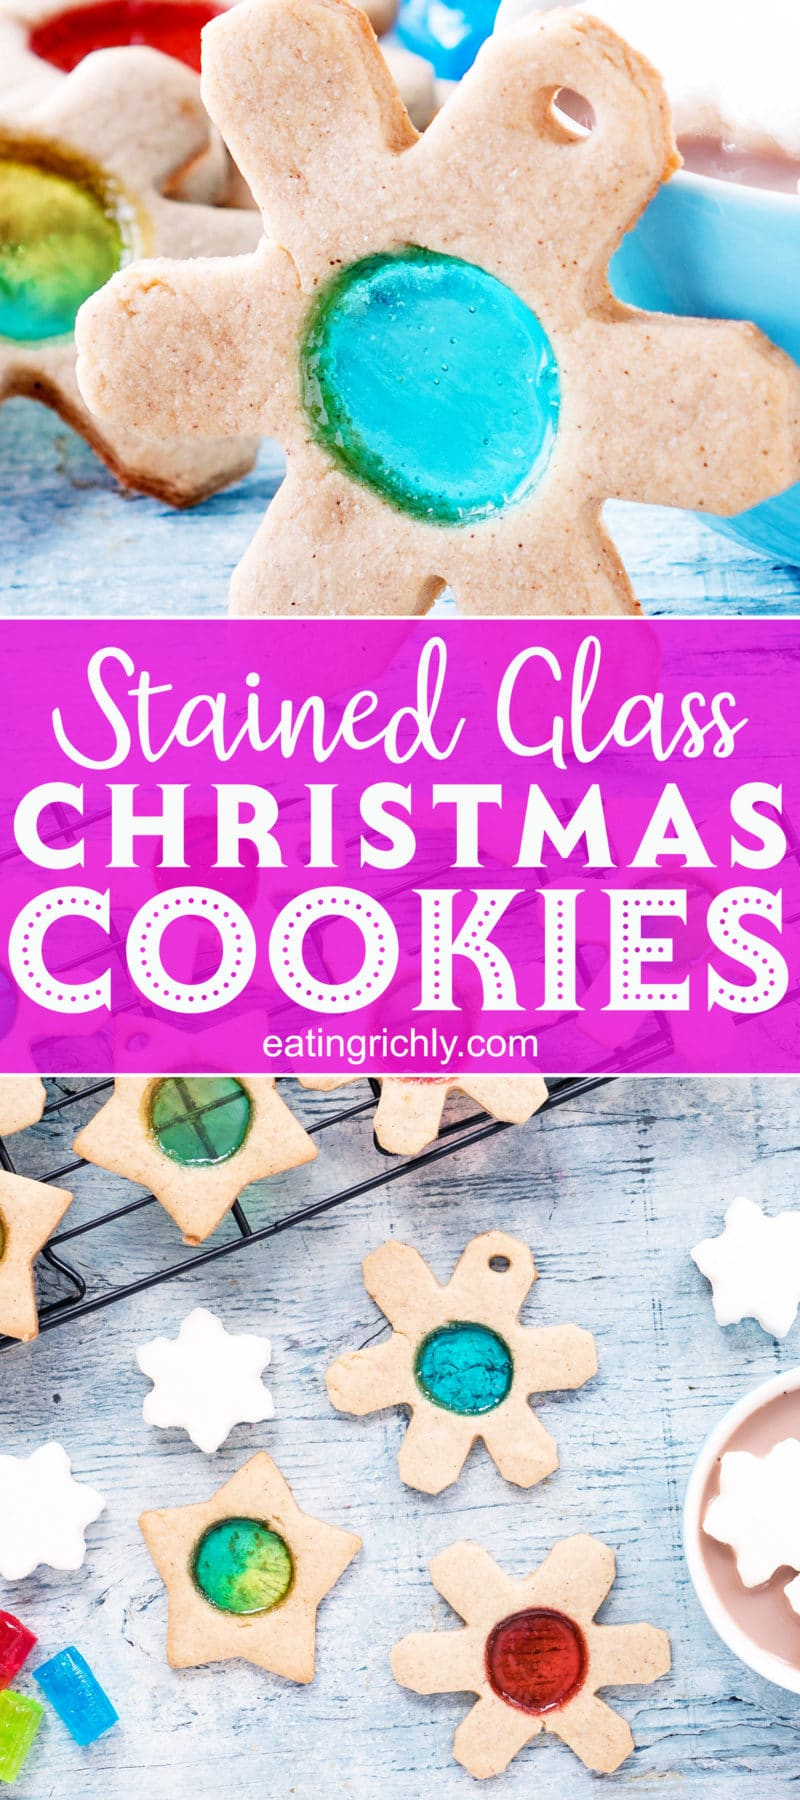 Snowflake and star shaped sugar cookies with colorful round windows in the center. Text reads Stained Glass Christmas Cookies